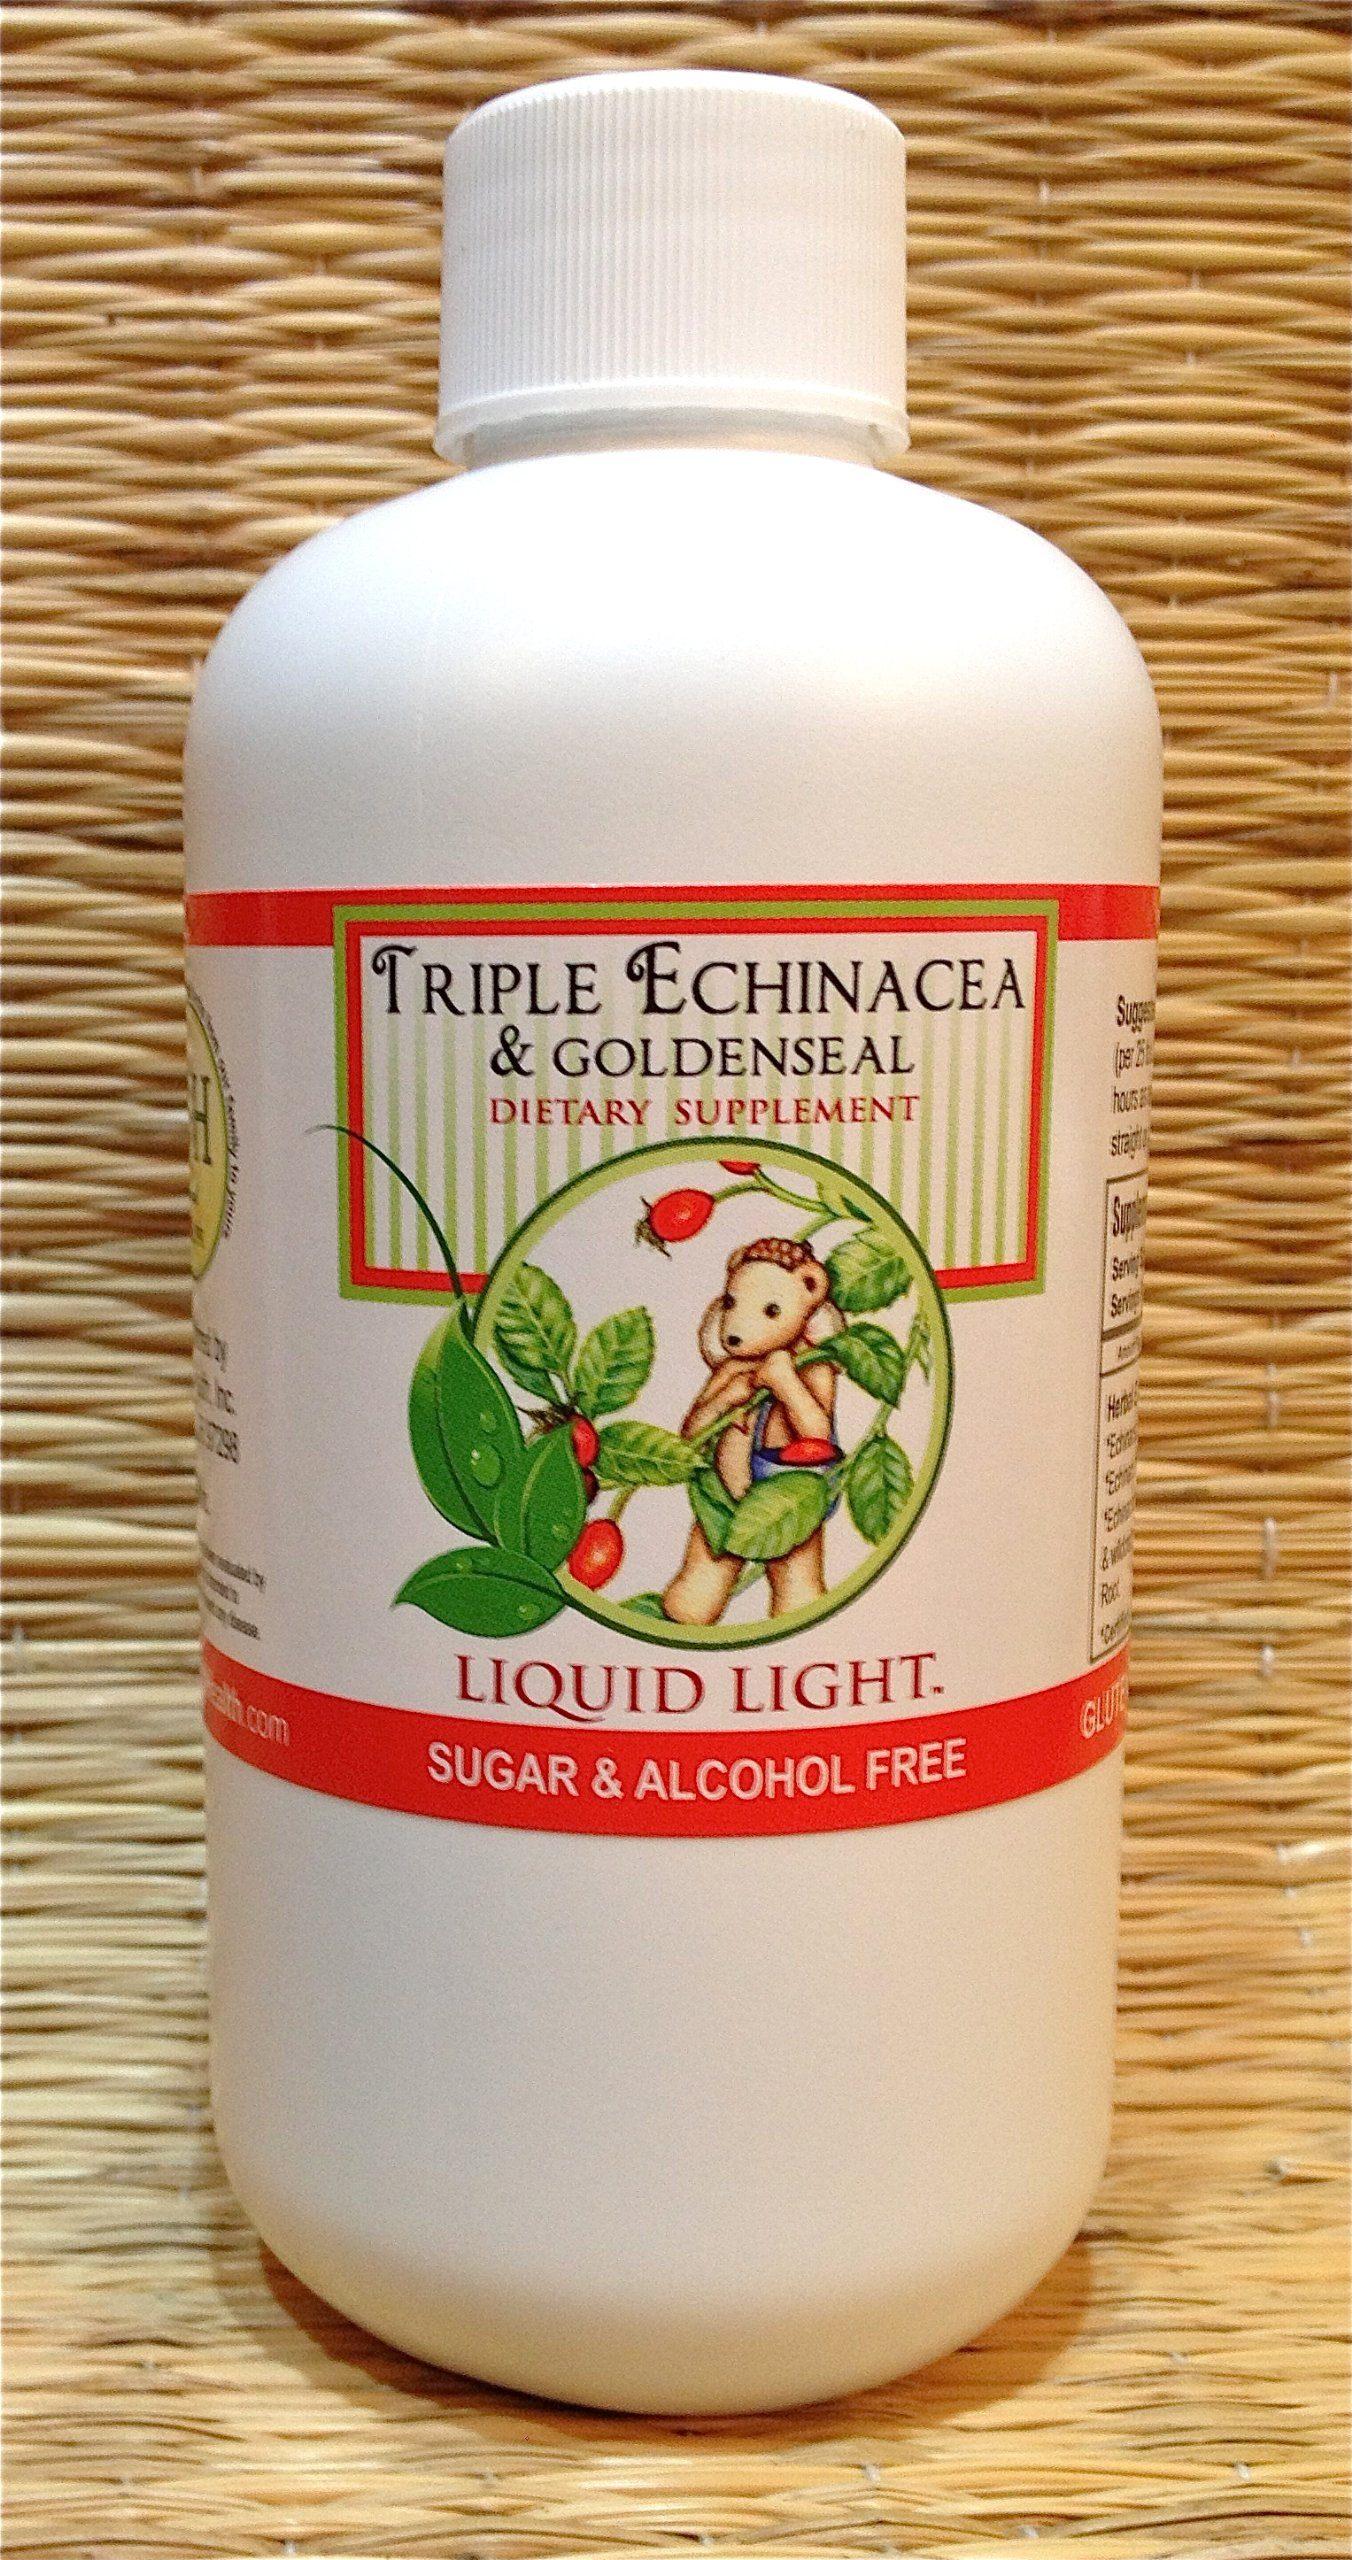 Triple Echinacea & Goldenseal (8 oz Bottle) - Immune, Ear Infections, Respiratory Support. Child Safe. Used Safely and Effectively for Over 20 Years.